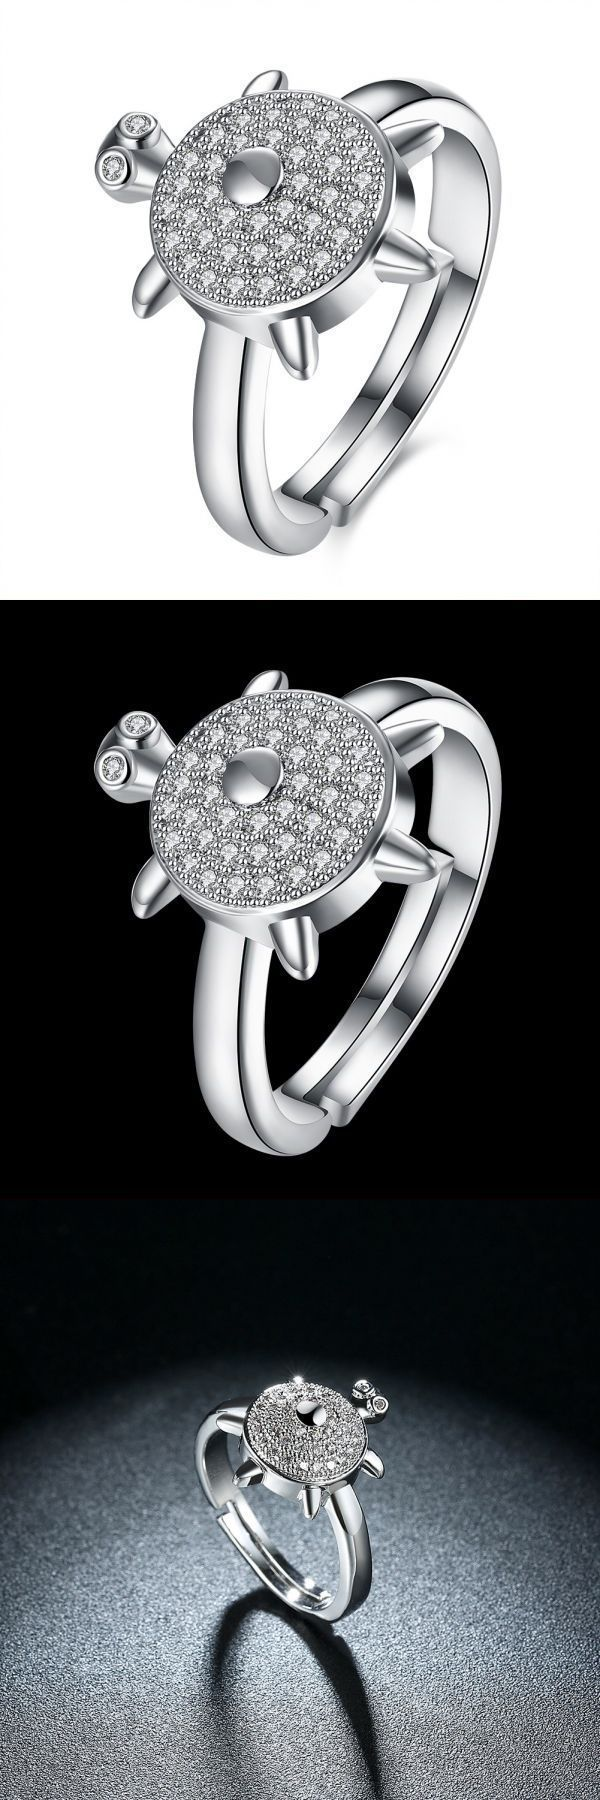 Inalis lovely turtle zircon platinum opening gift party wedding